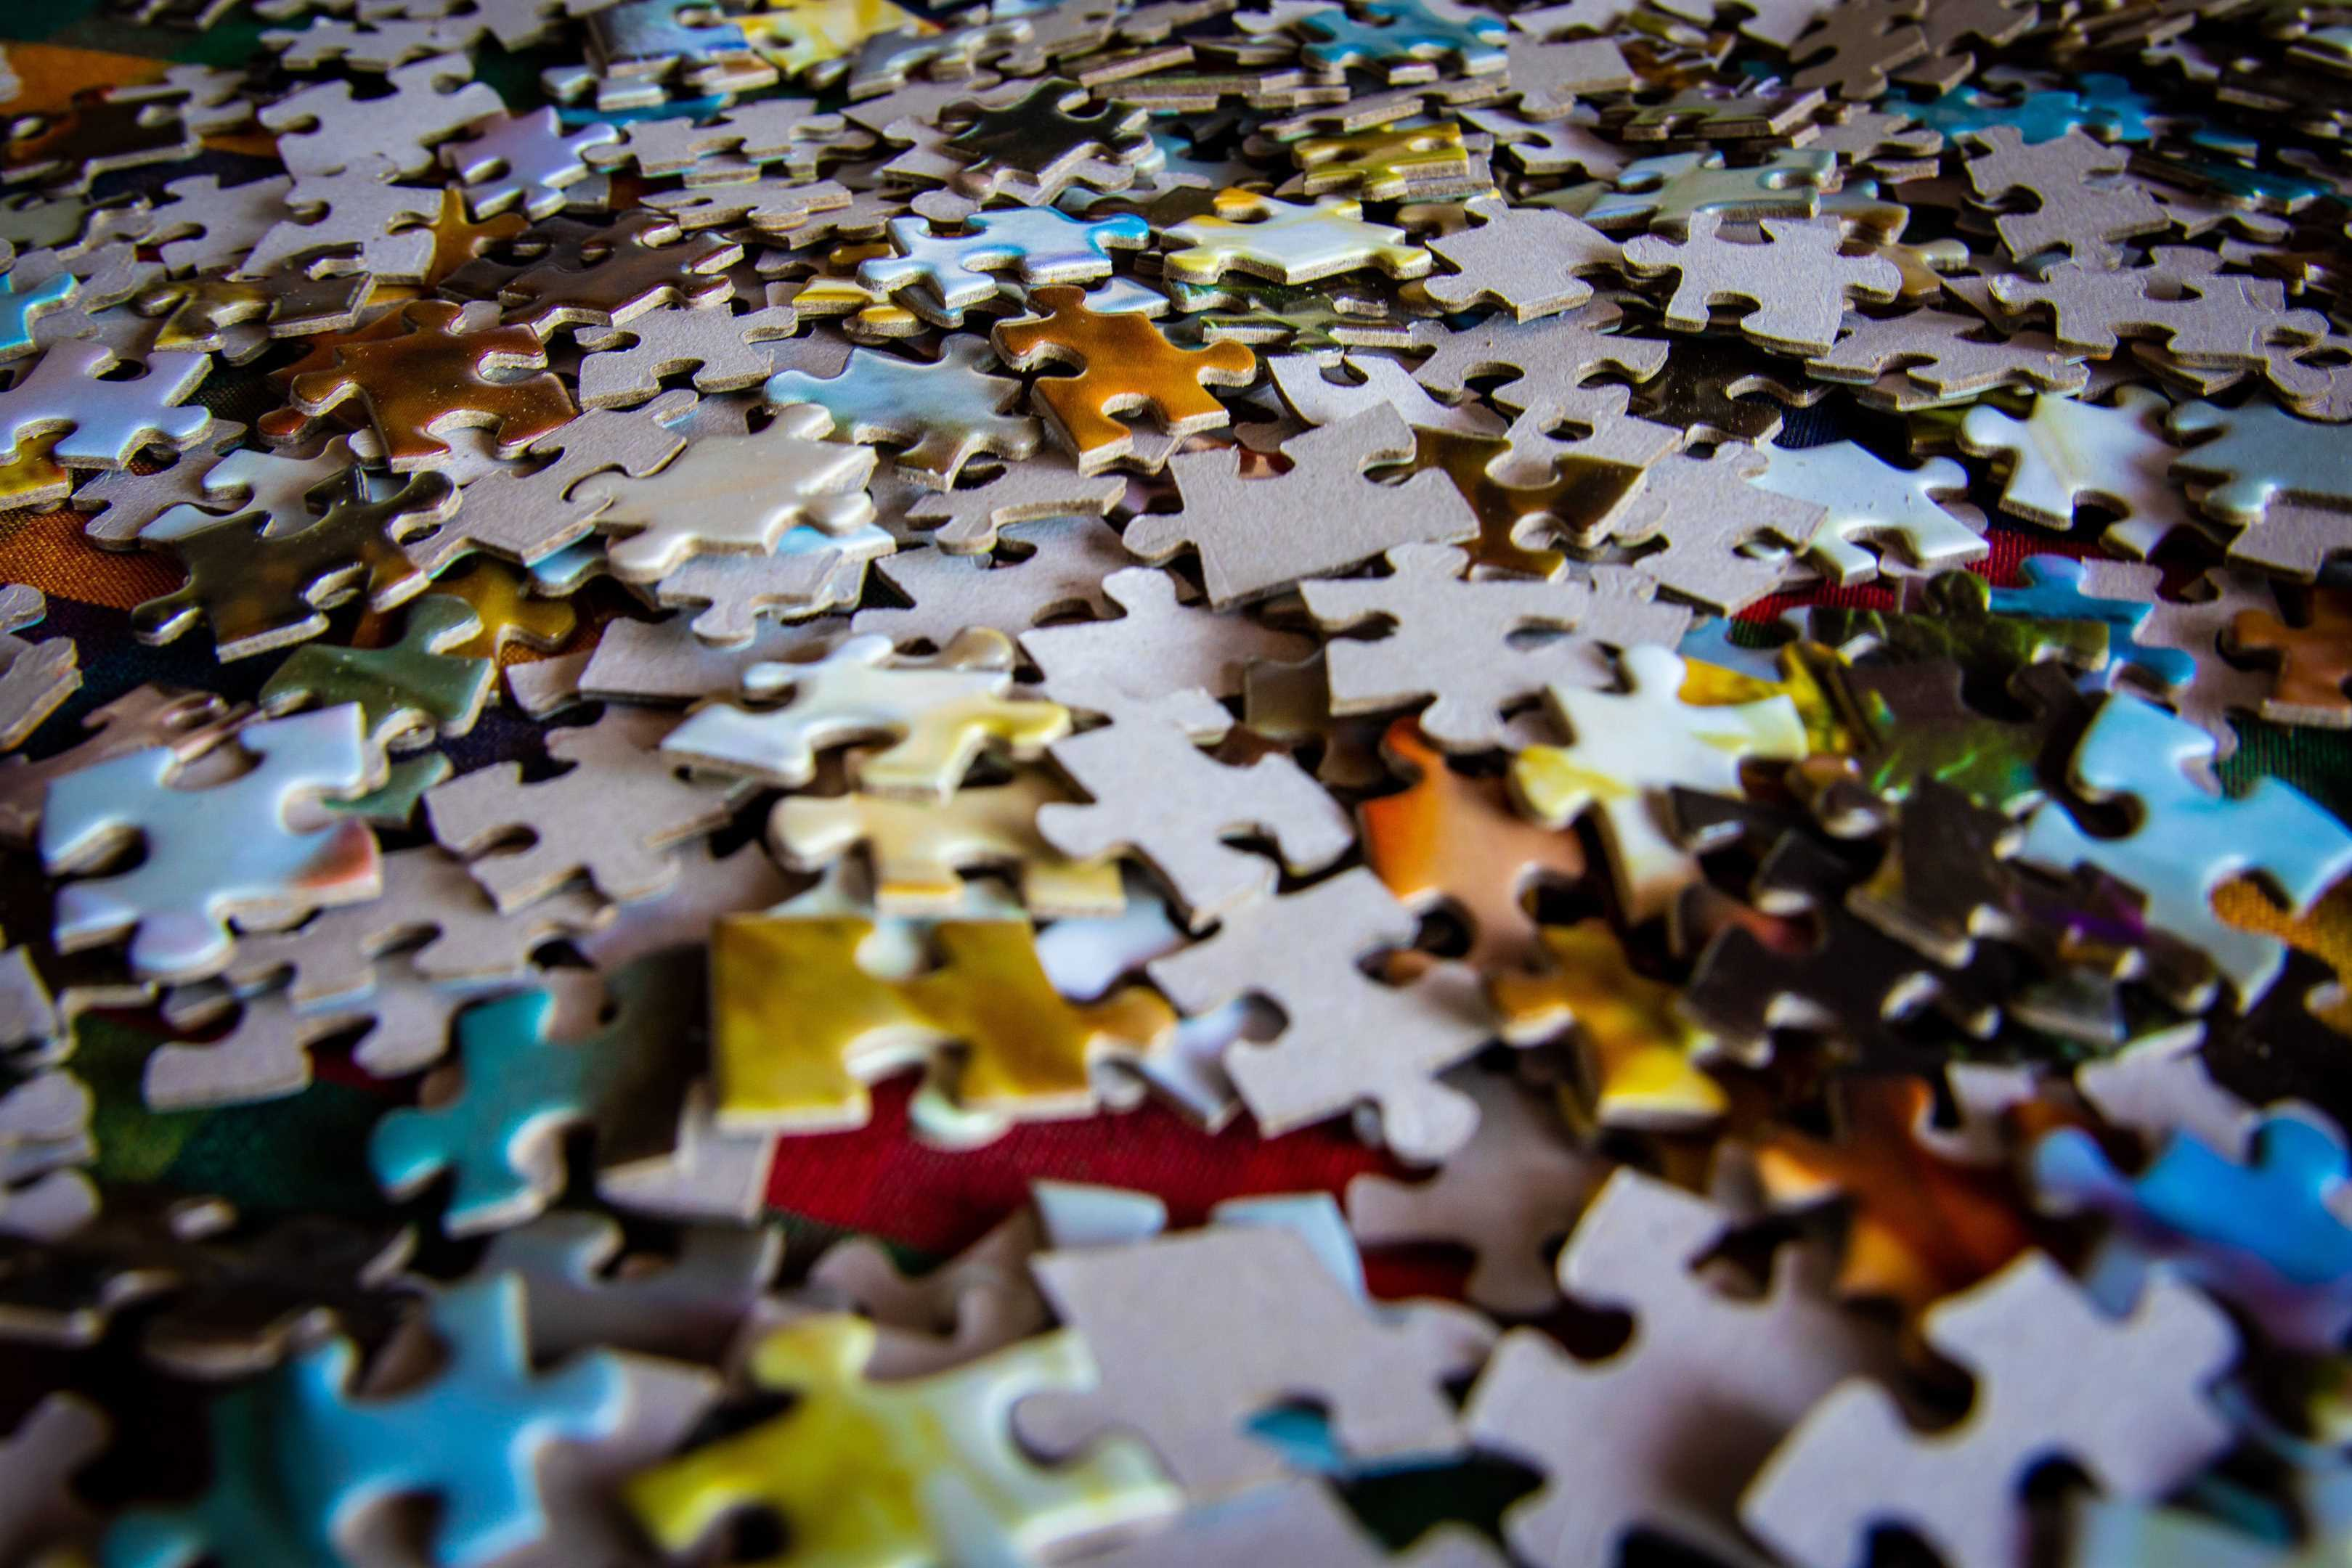 January 29th is National Puzzle Day!